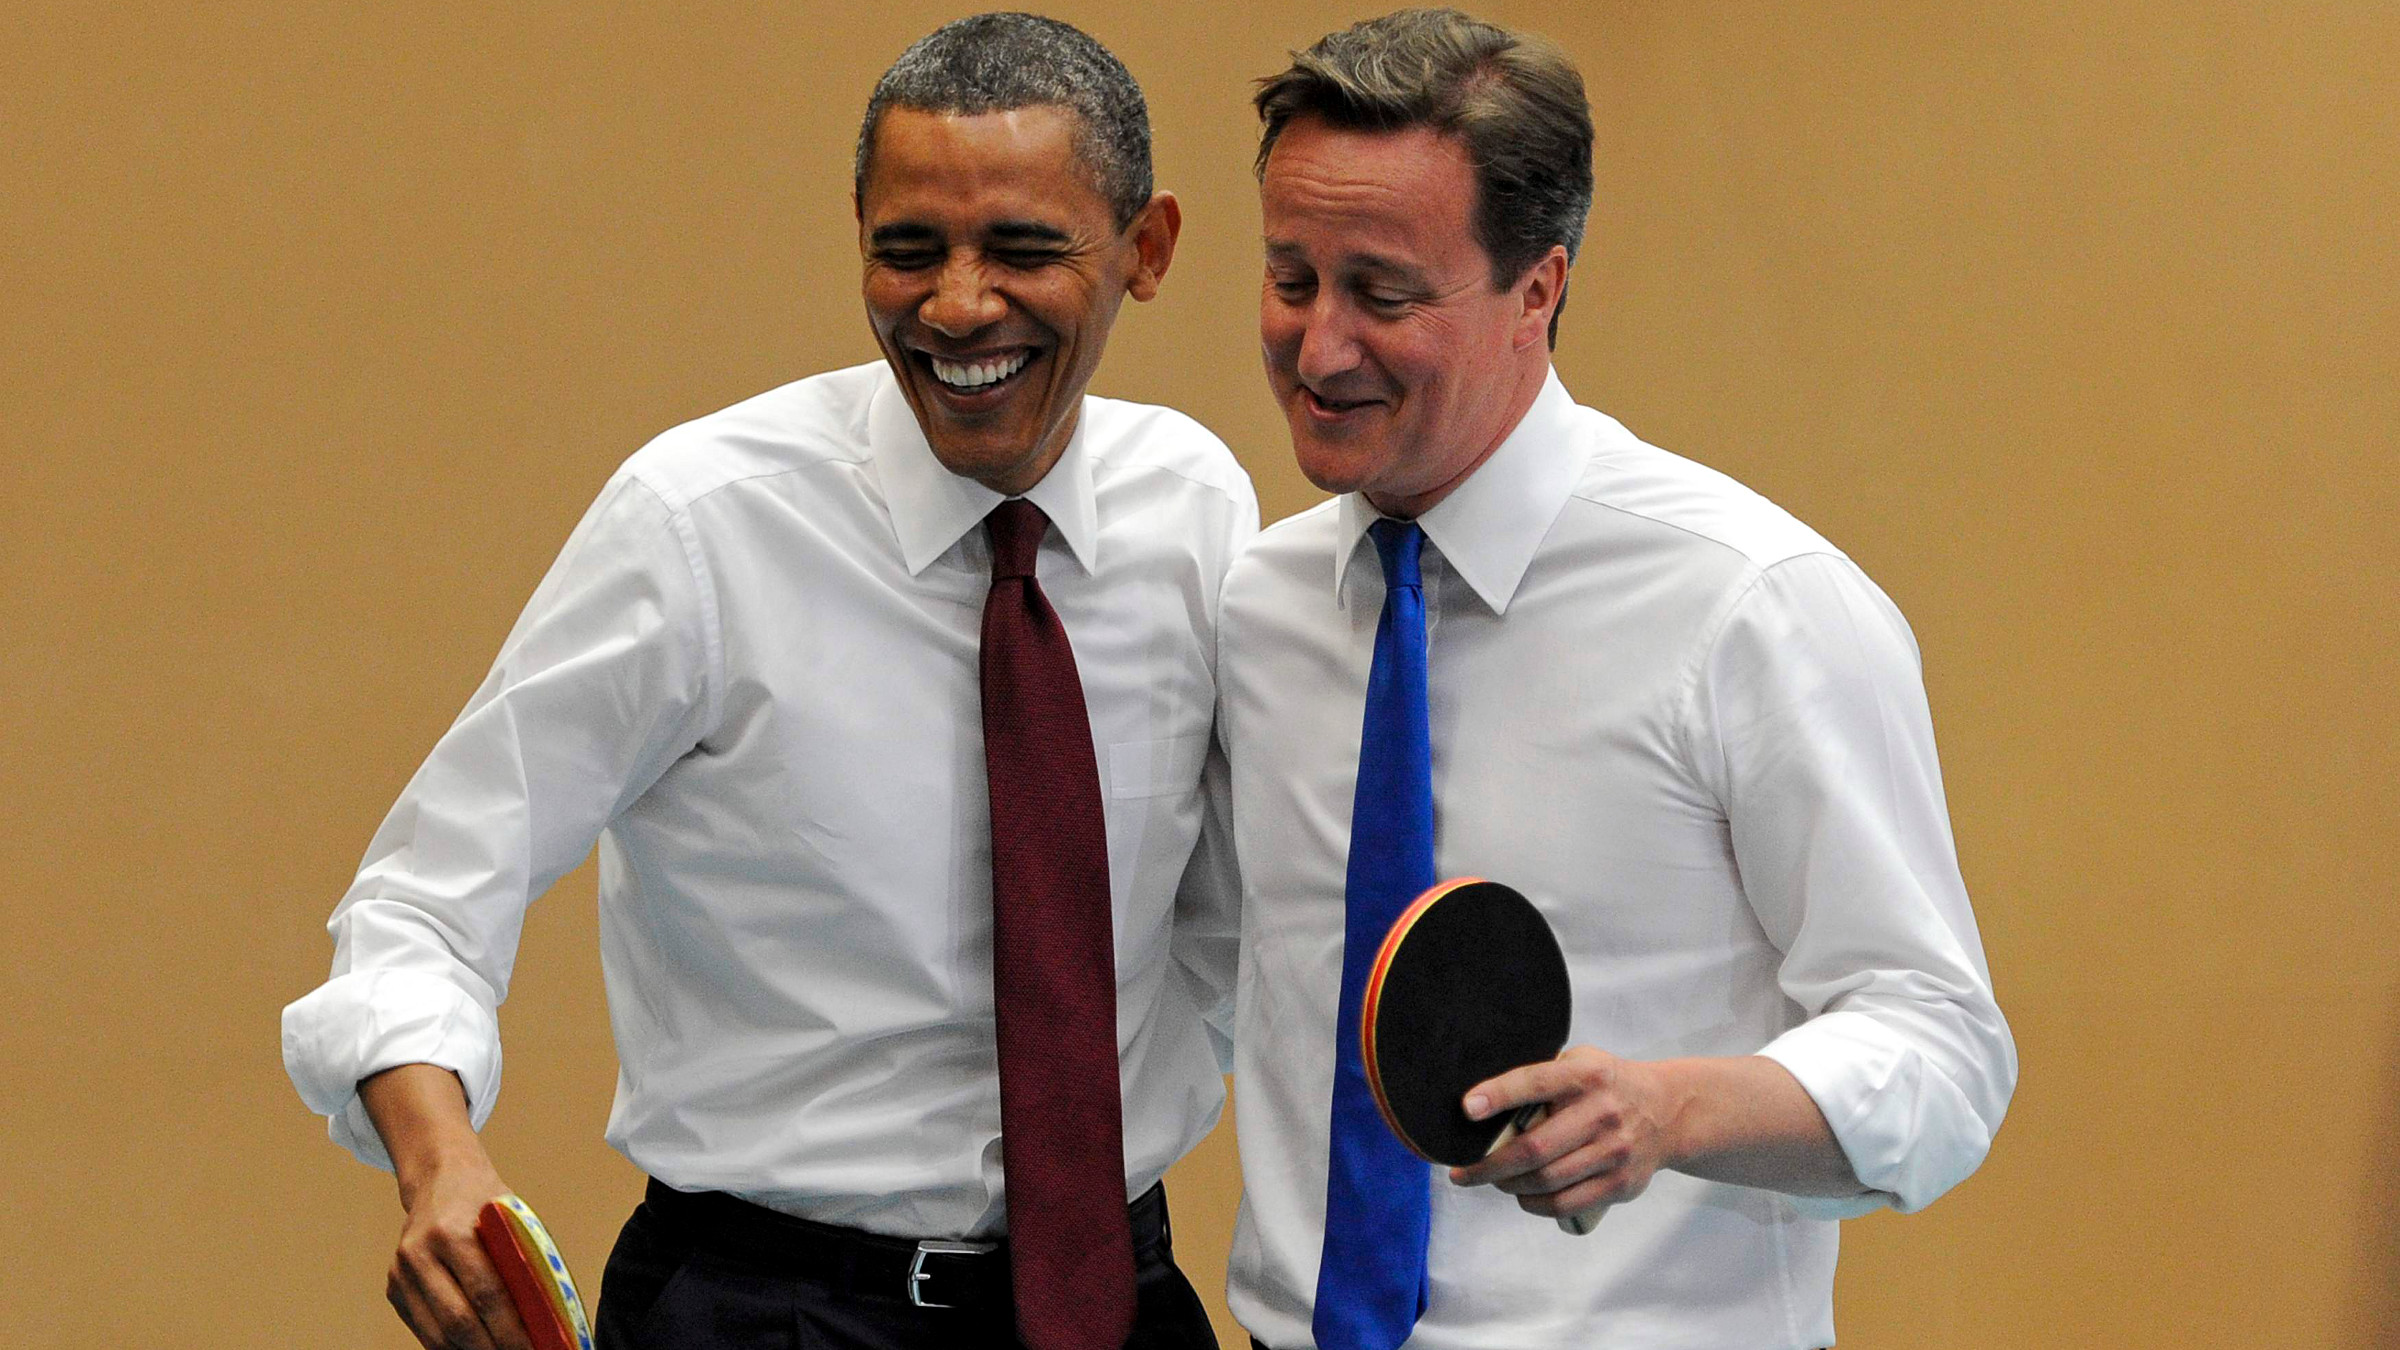 U.S. President Barack Obama, left, and Britain's Prime Minister David Cameron laugh as they play table tennis at Globe Academy, in south London Tuesday May 24, 2011.